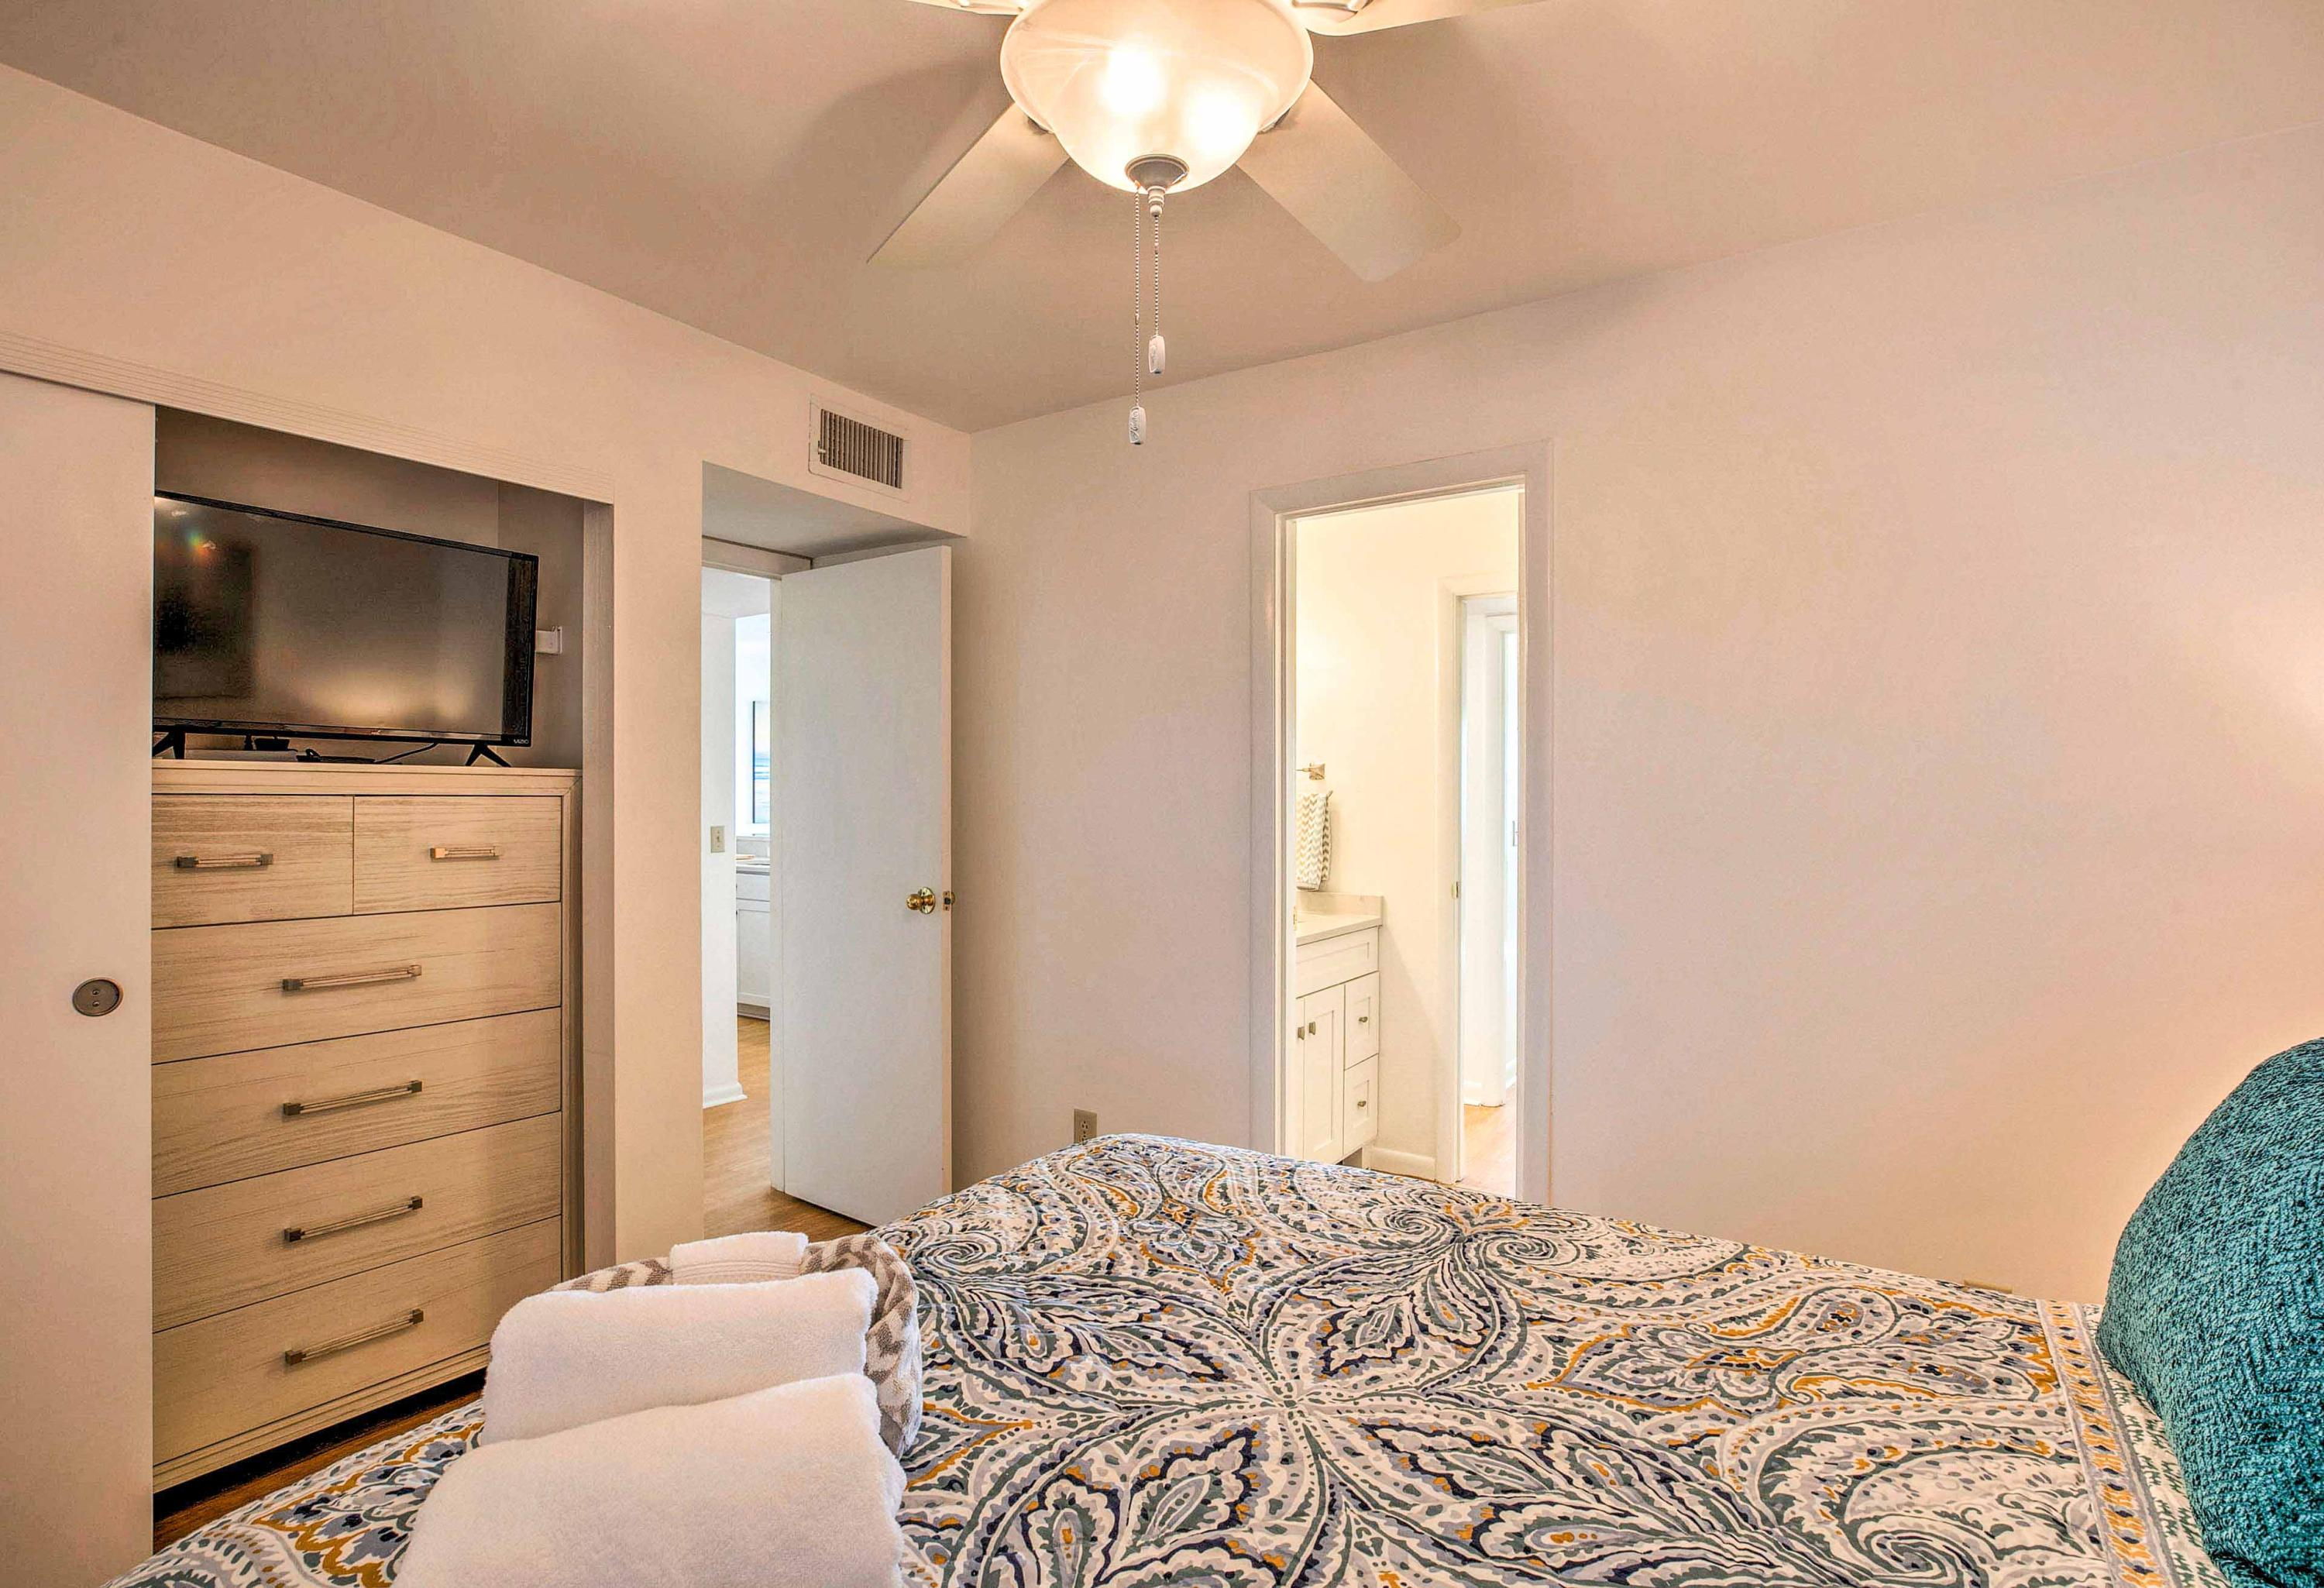 Mariners Cay Homes For Sale - 93 Mariners Cay, Folly Beach, SC - 15